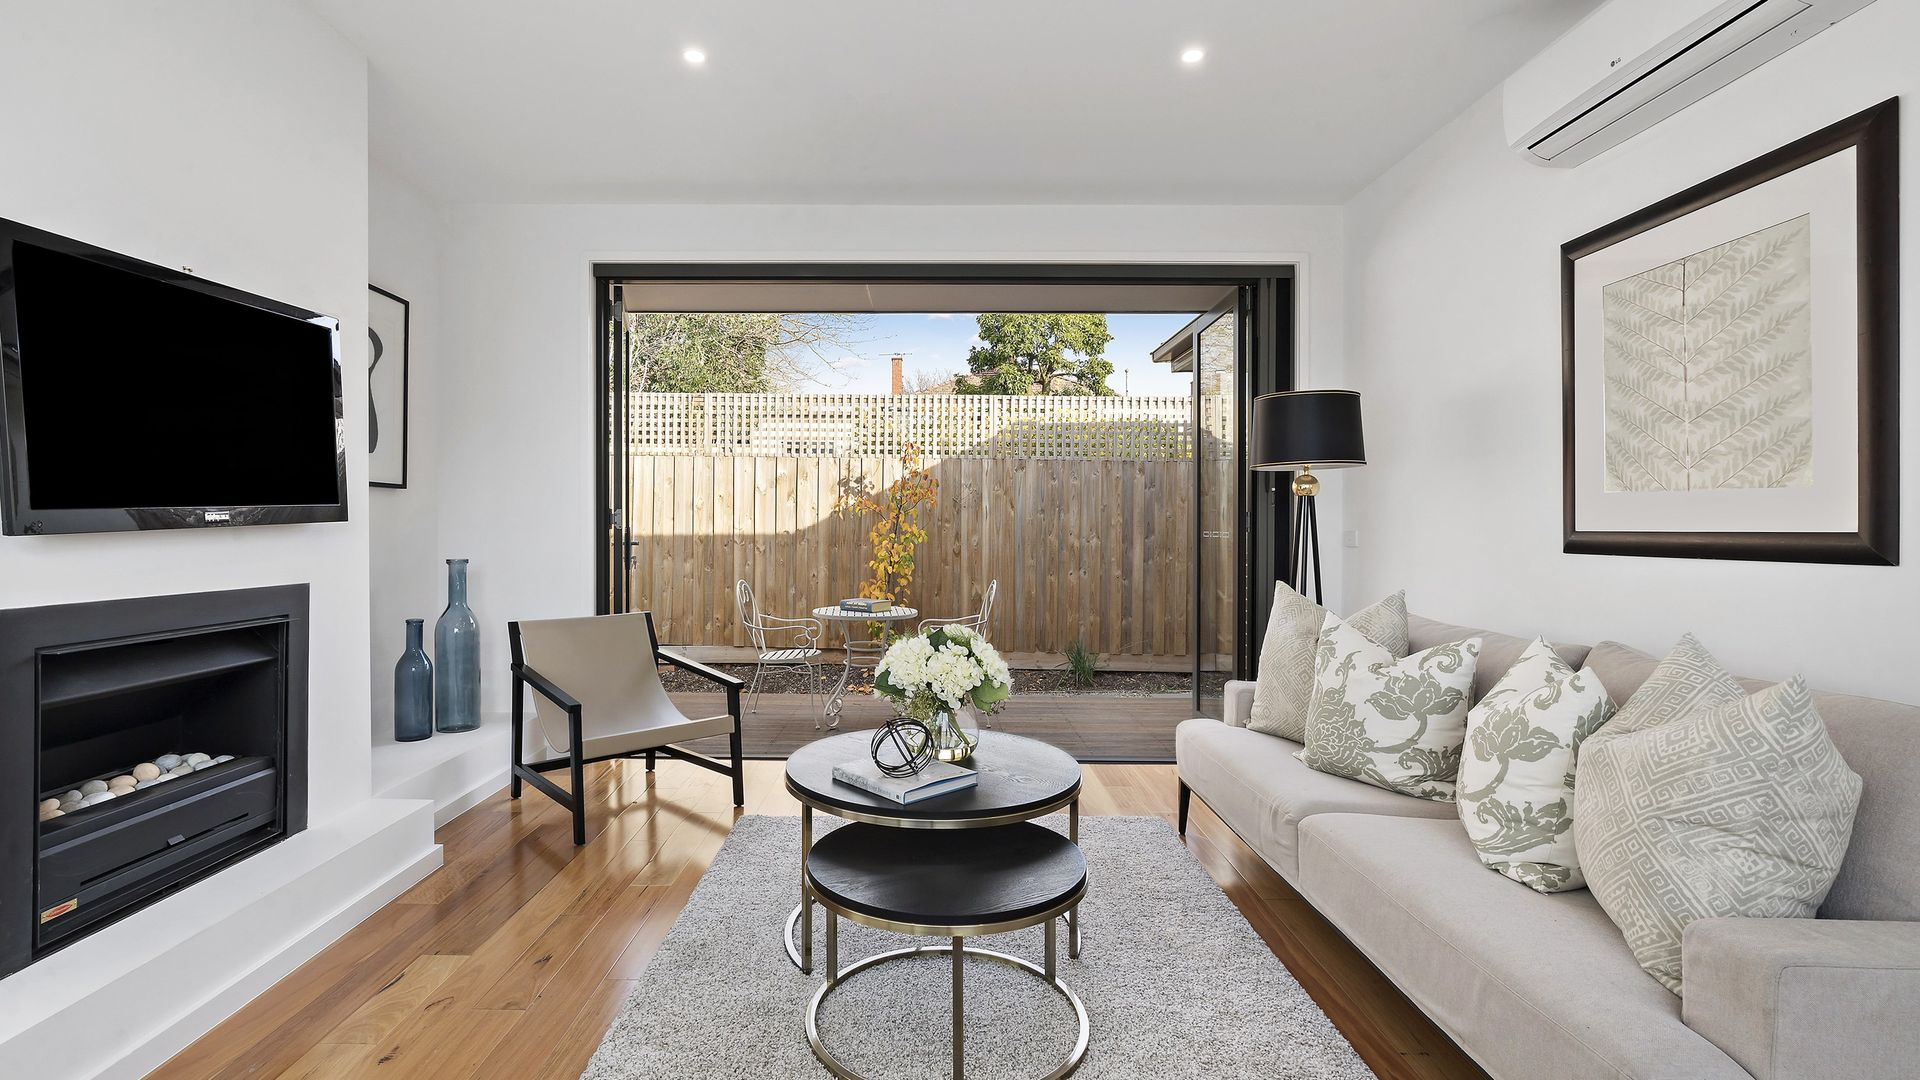 3/18 Lesley Street, Camberwell VIC 3124, Image 1